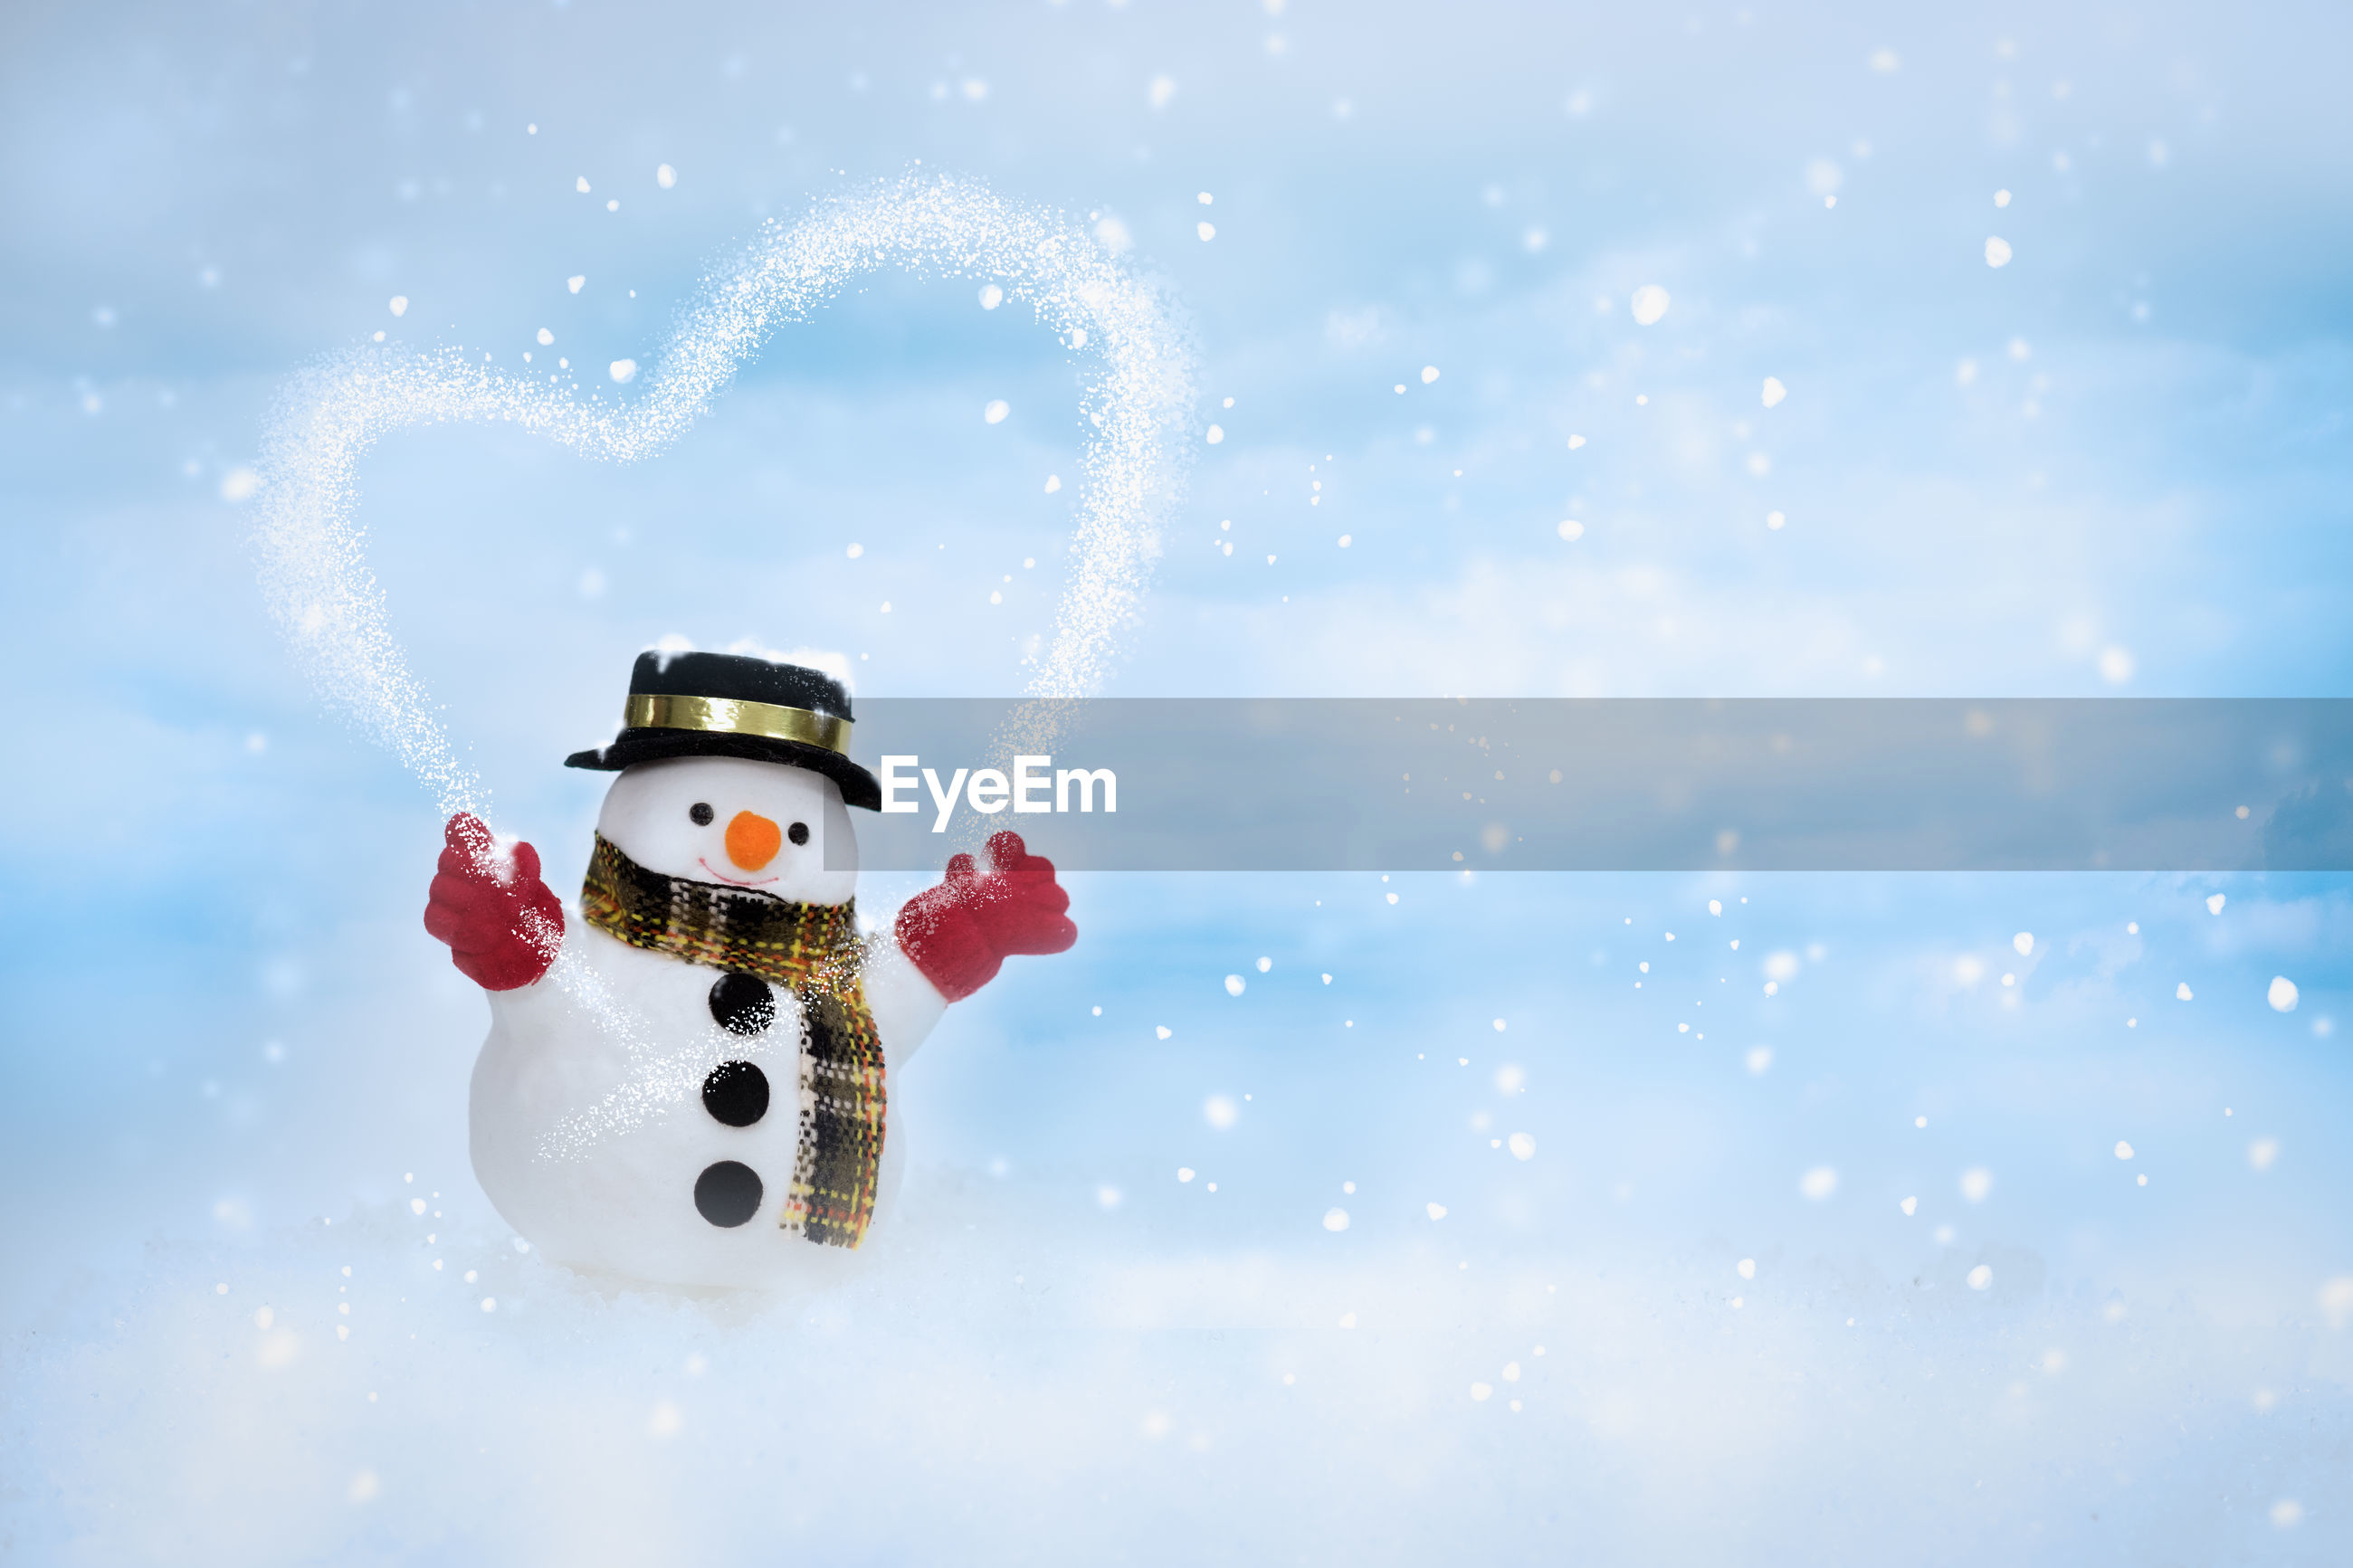 Close-up of snowman during winter